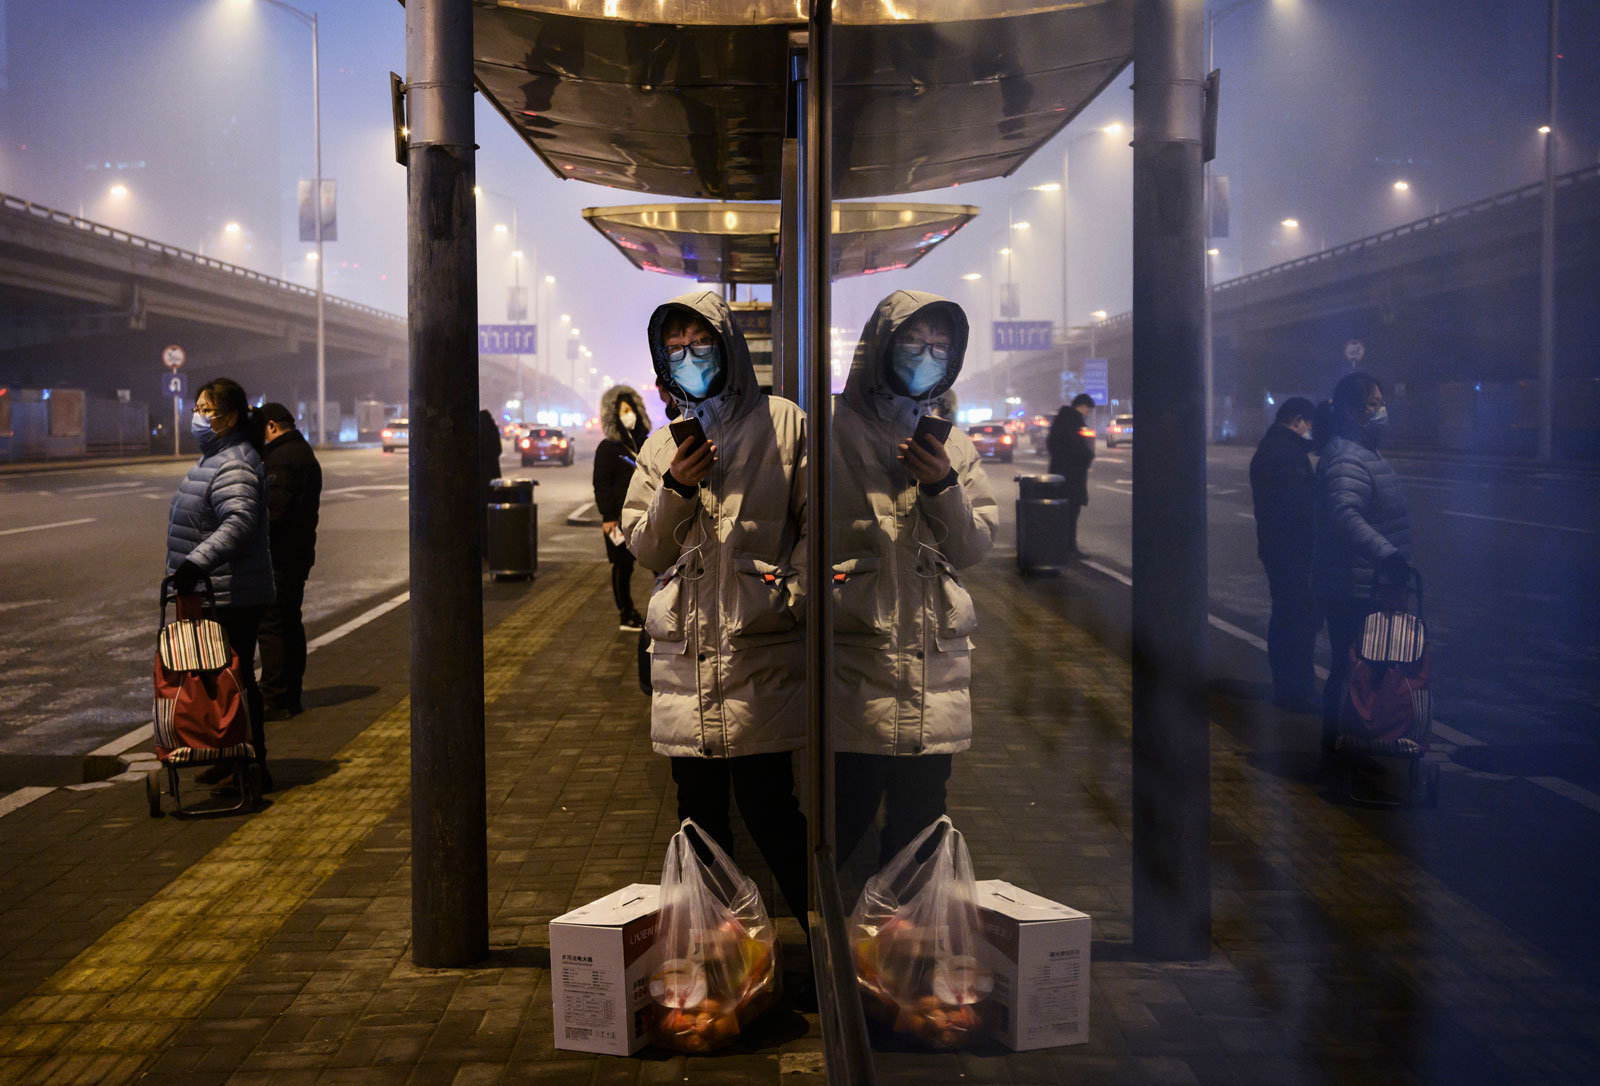 Chinese commuters wear protective masks as they wait for a bus at a usually busy stop on February 13, in Beijing, China.